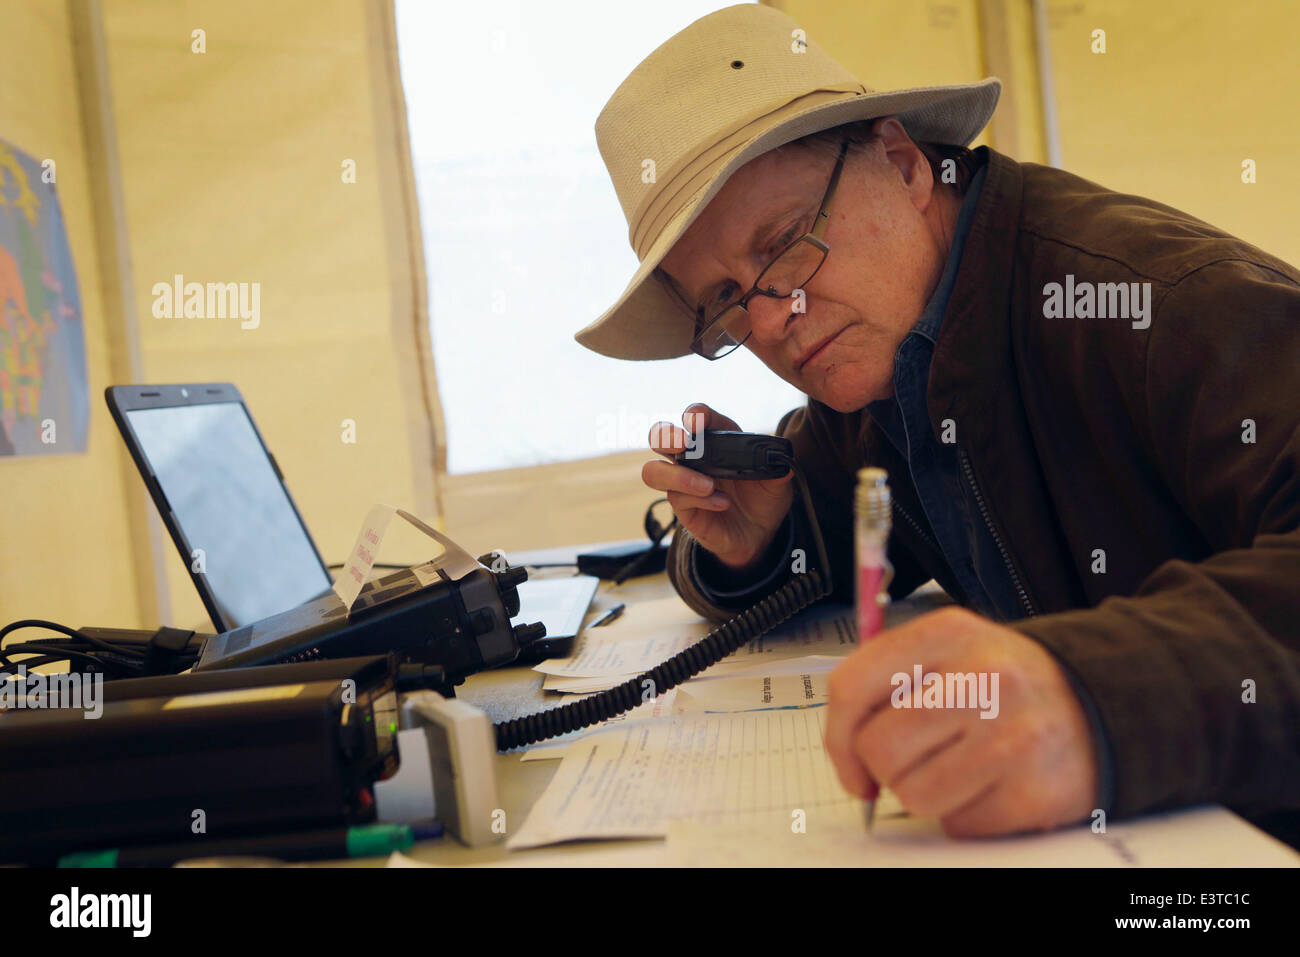 Vancouver, Canada. 28th June, 2014. An amateur radio operator works on the radio equipment during the annual radio Stock Photo